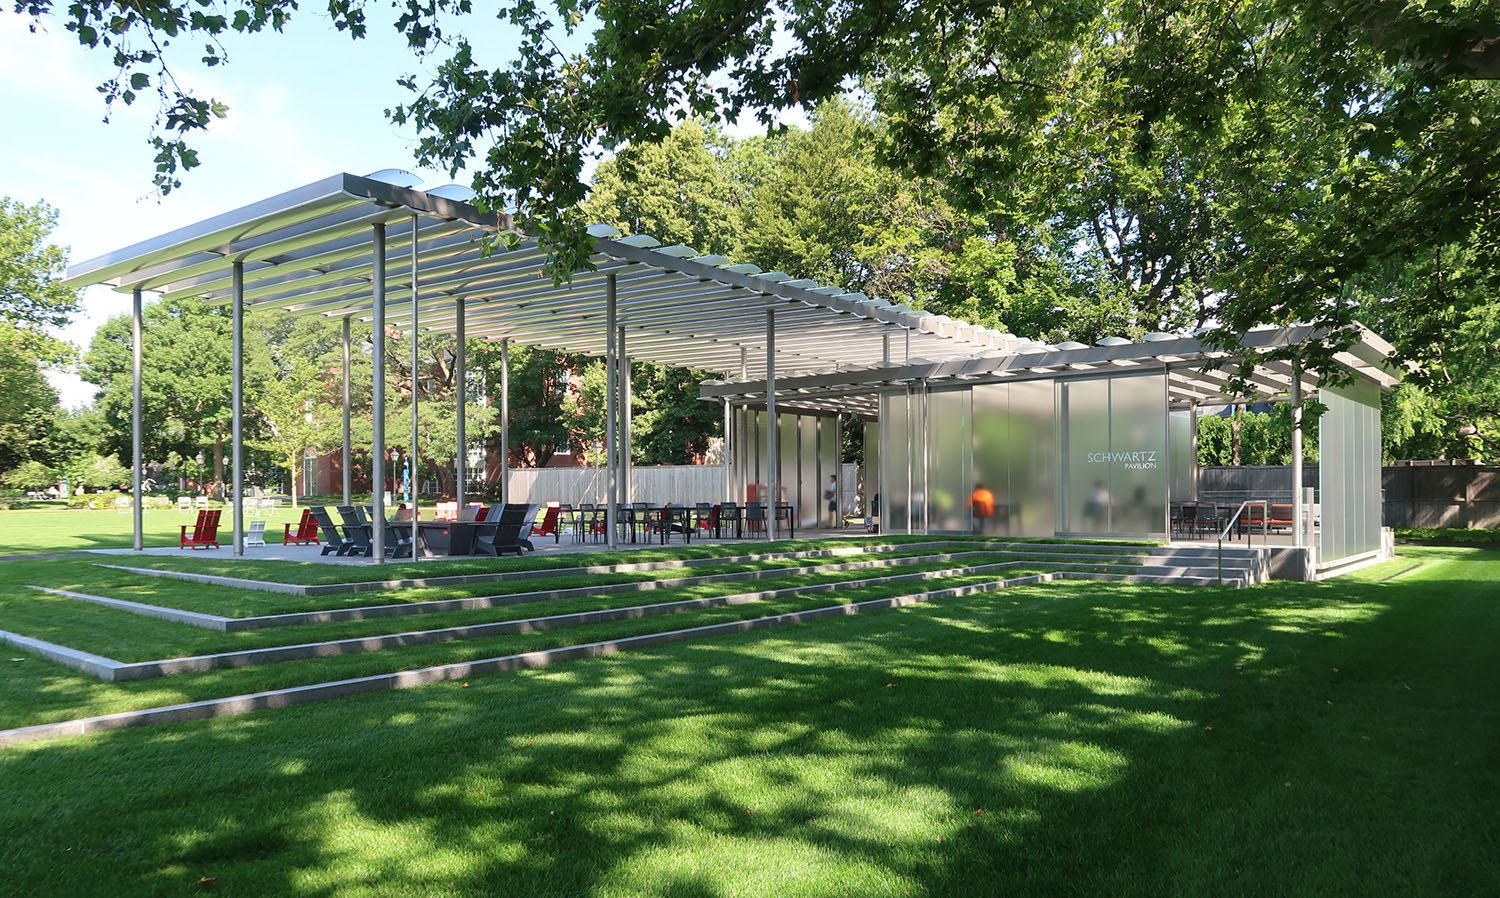 The pavilion has become the focal point for student engagement and activity within the newly renovated campus commons Richard Kress, courtesy of James Carpenter Design Associates